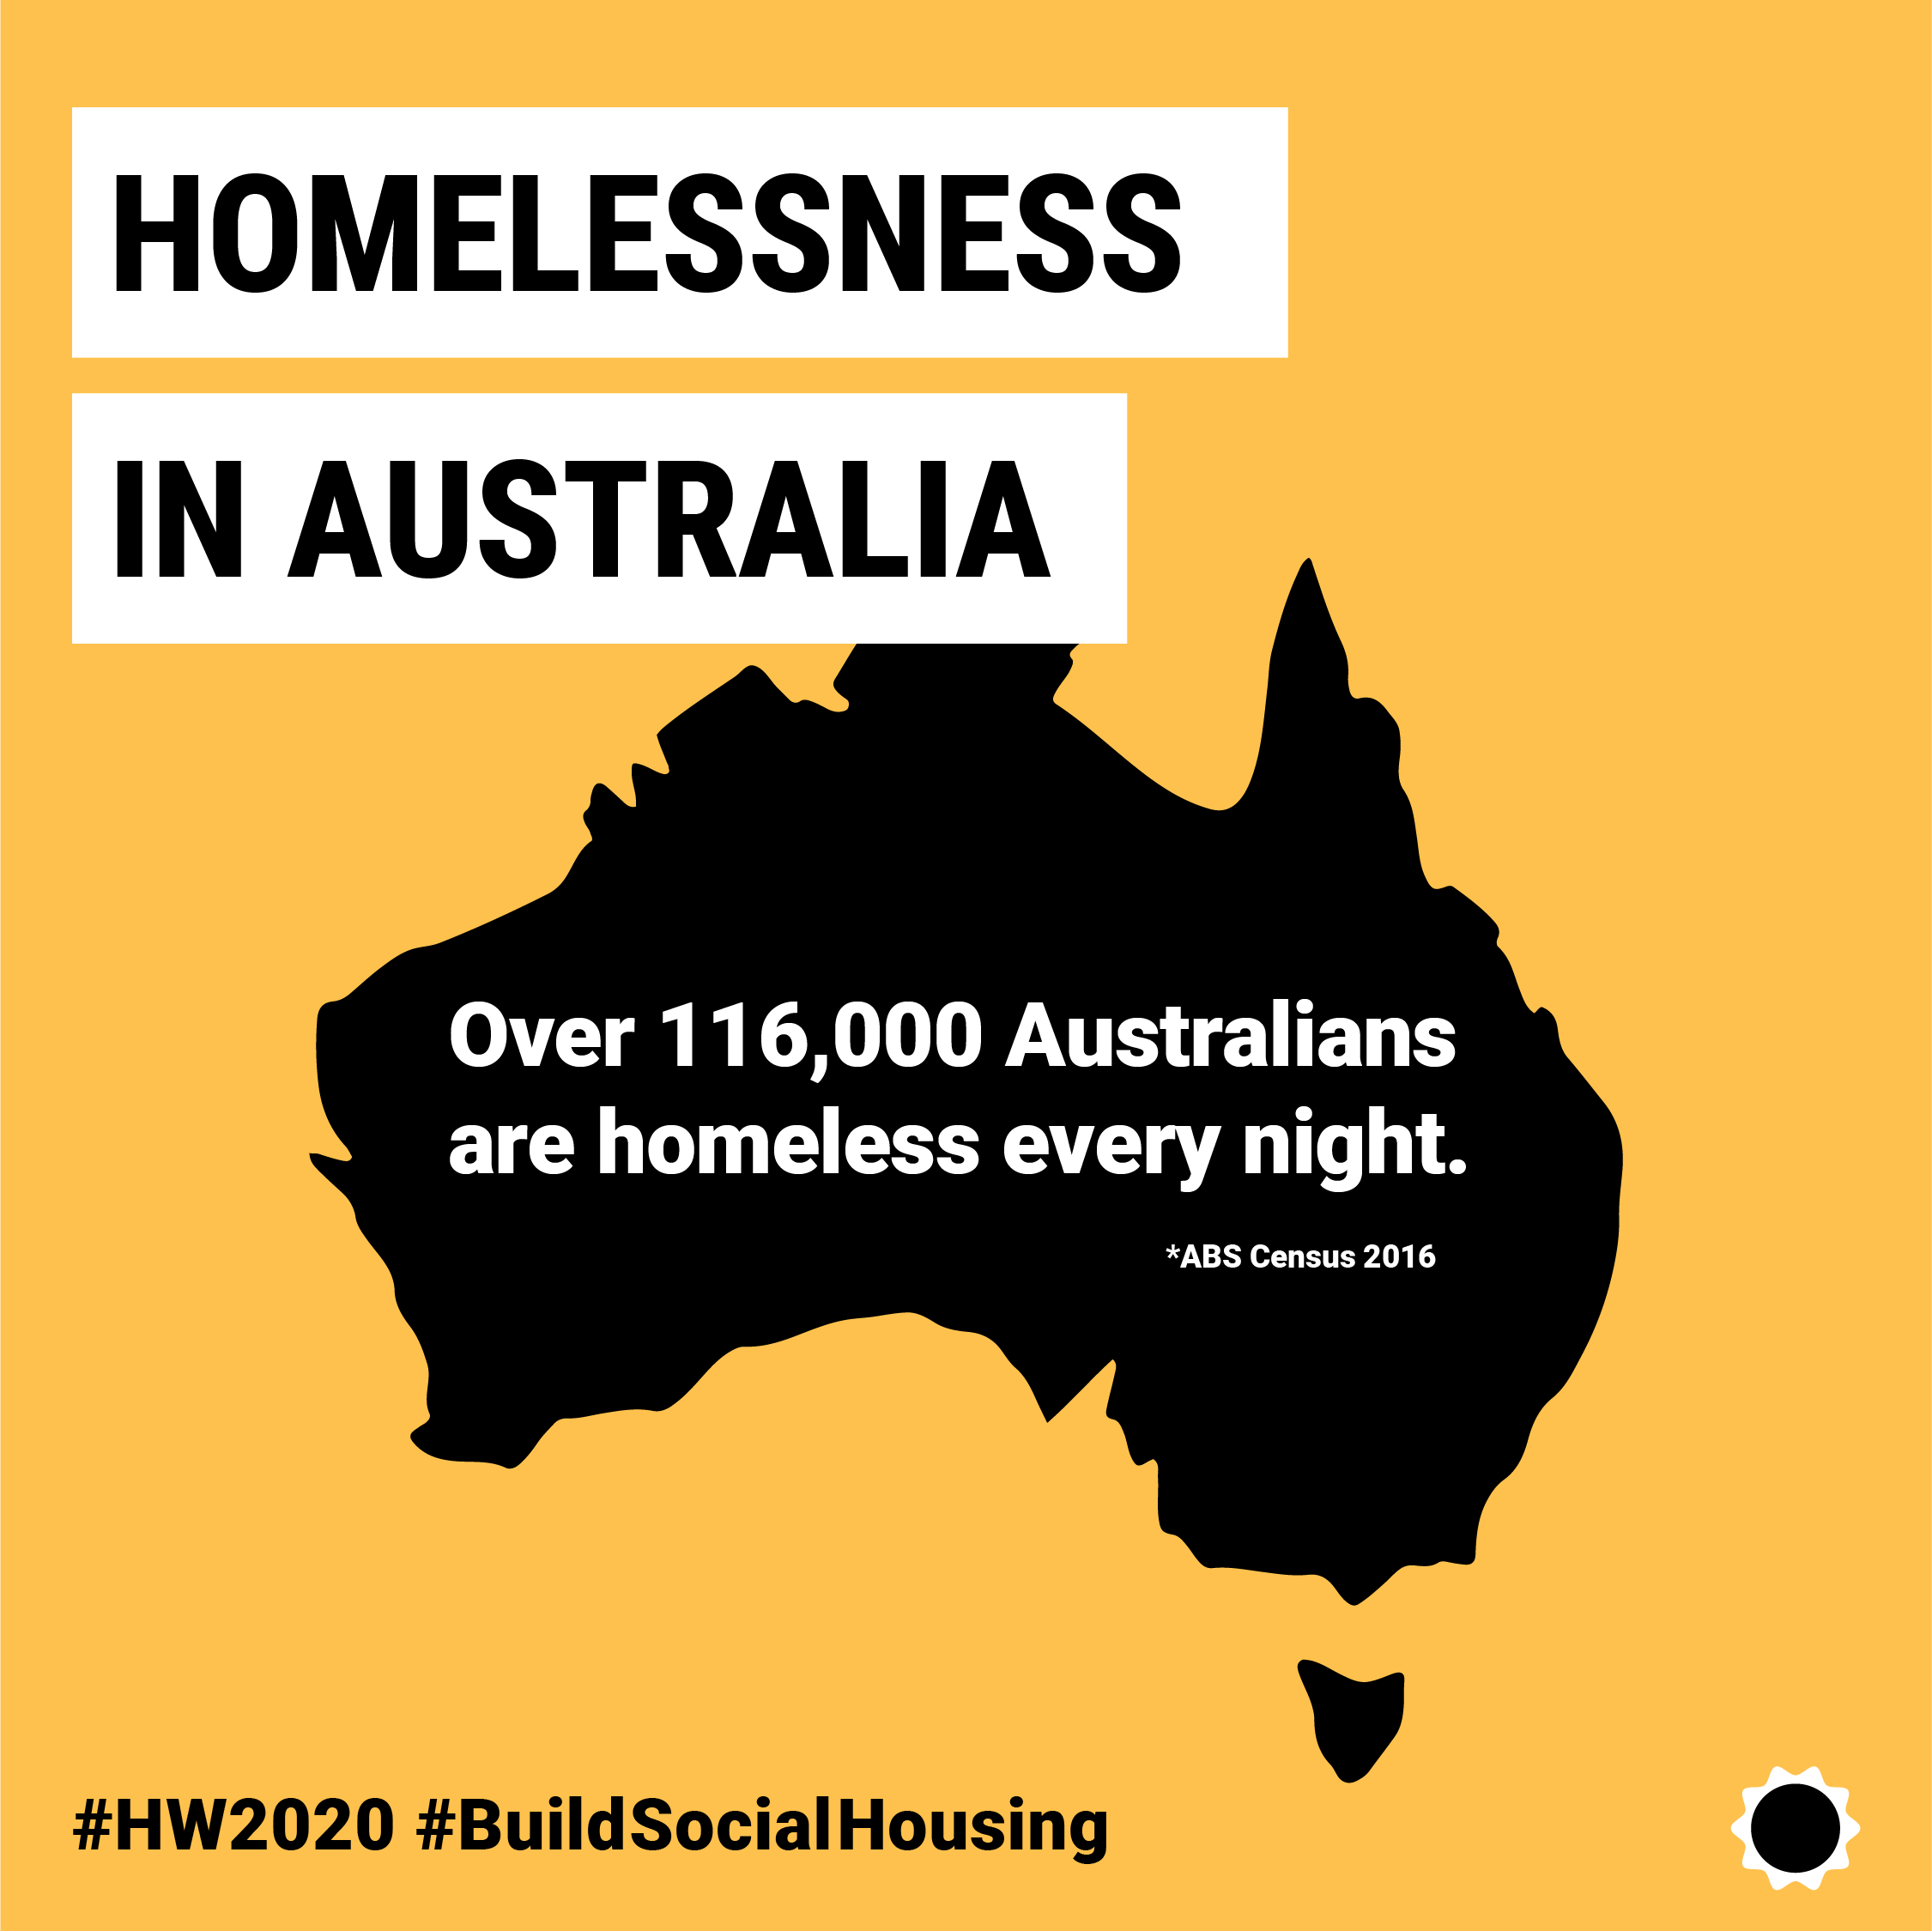 Homelessness in Australia - Over 116,000 Australians are homeless every night.